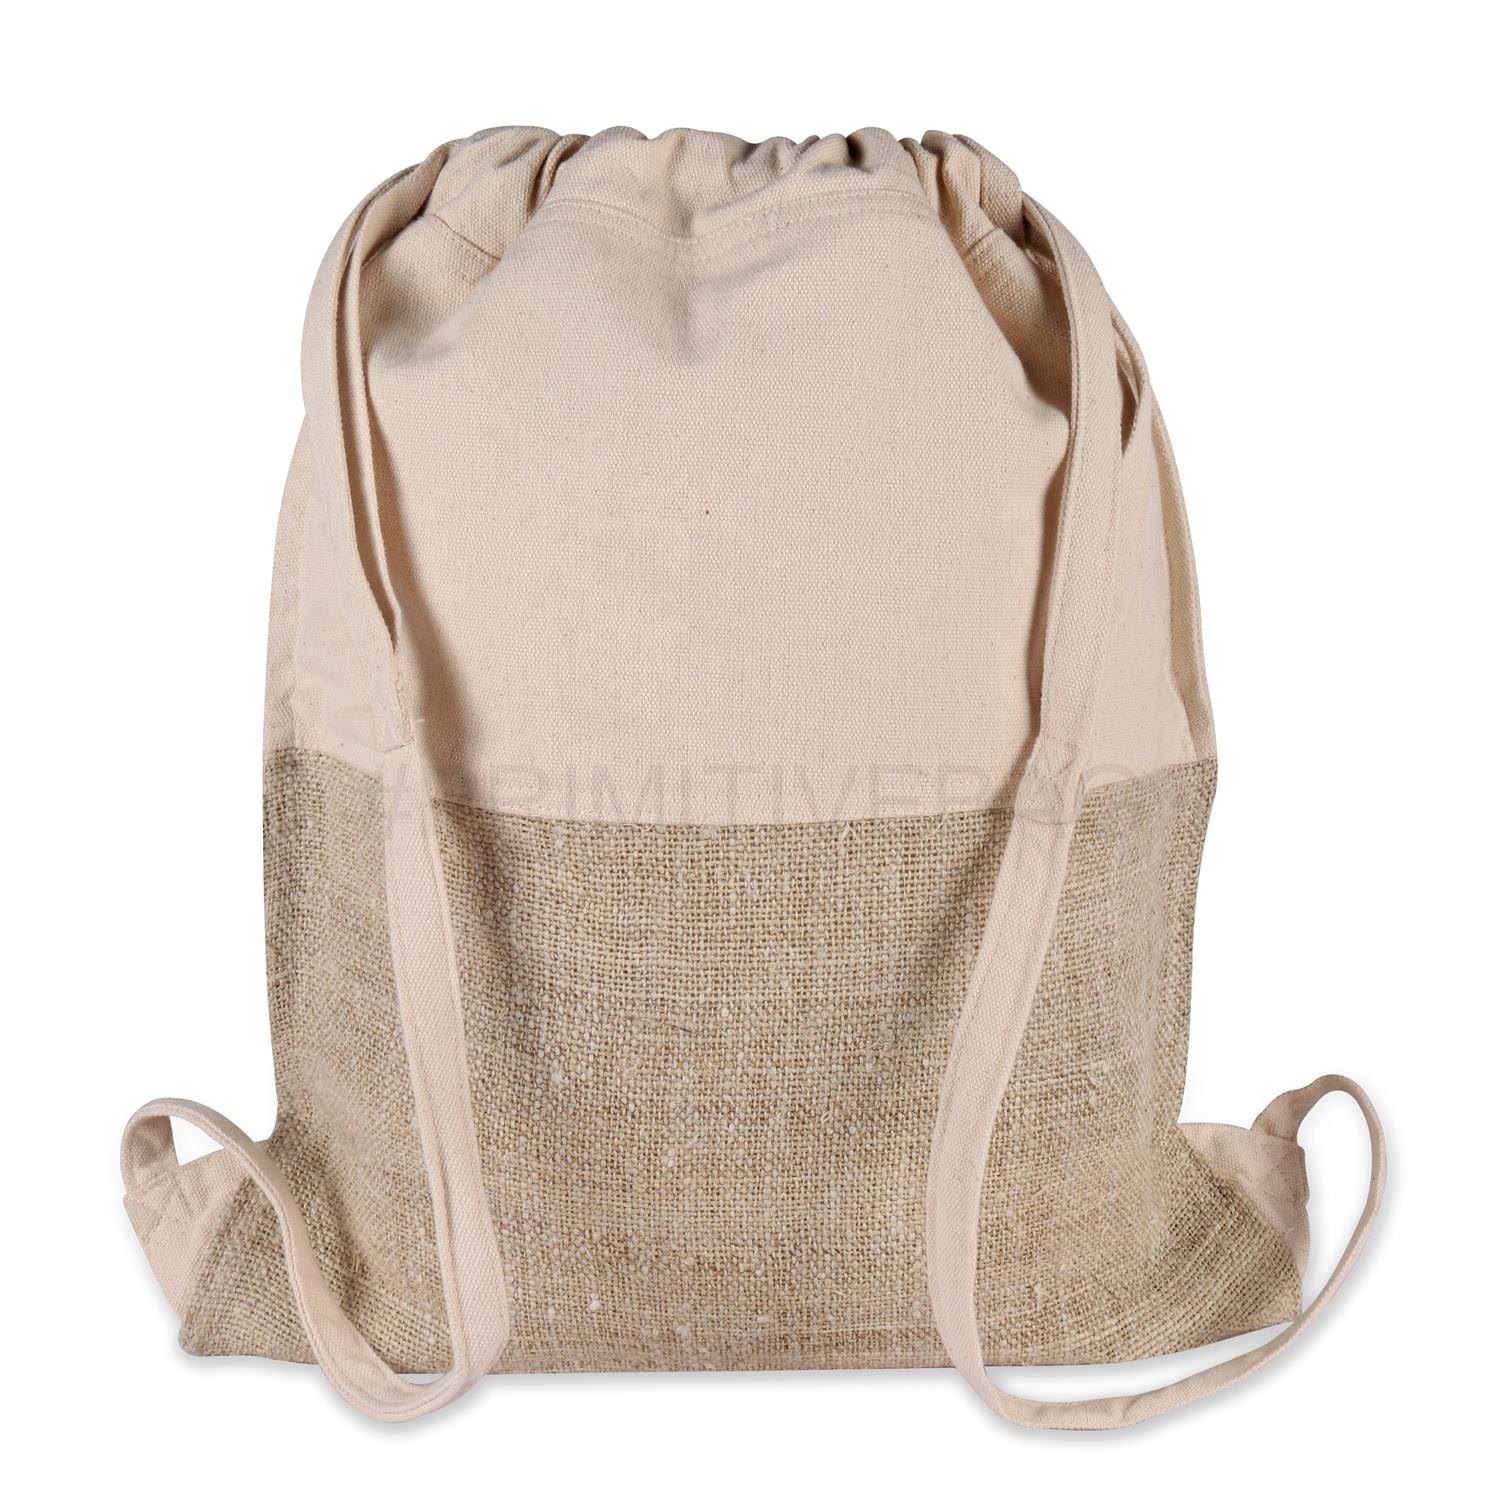 Natural Hemp Cotton combination Backpack Drawstring Closure- Handmade Primitive Hemp Cotton Canvas Handle Lightweight Backpack